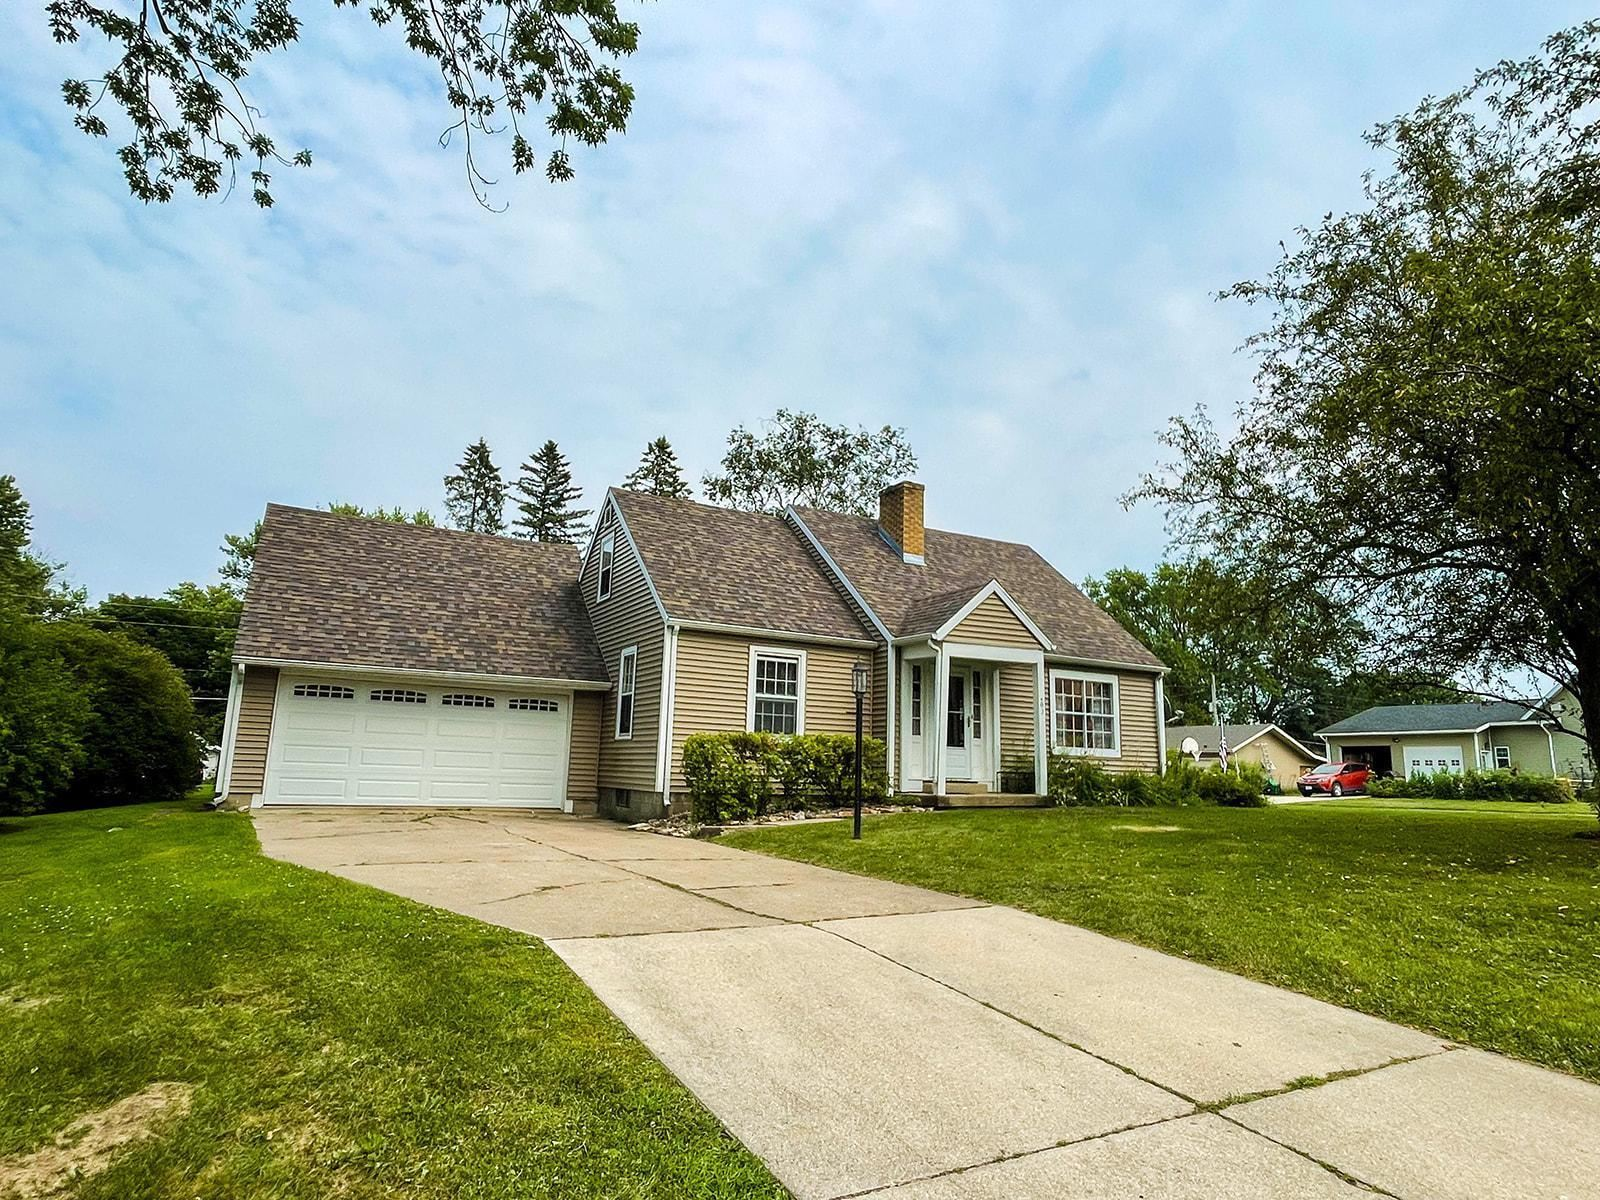 402 3rd Avenue NW, Spring Grove, MN 55974 - MLS#: 6022823